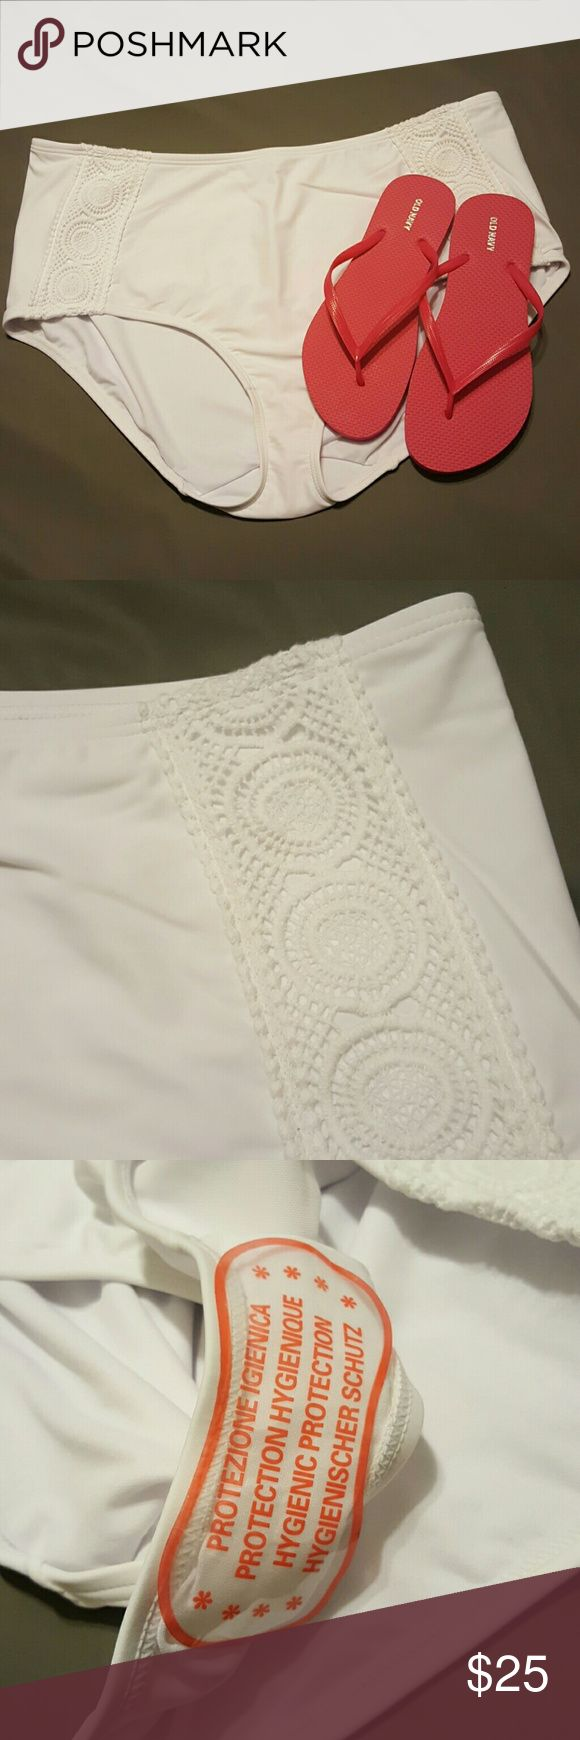 Lane Bryant Cacique White Swim Bottom True white swim brief with soft crocheted detail on both hips. Soft-to-touch but supportive stretchy material - no itchy seams! BNWT, never been worn or even tried on. Plastic manufacturer liner on crotch. Clean, non-smoking home, no pets. Lane Bryant Swim Bikinis